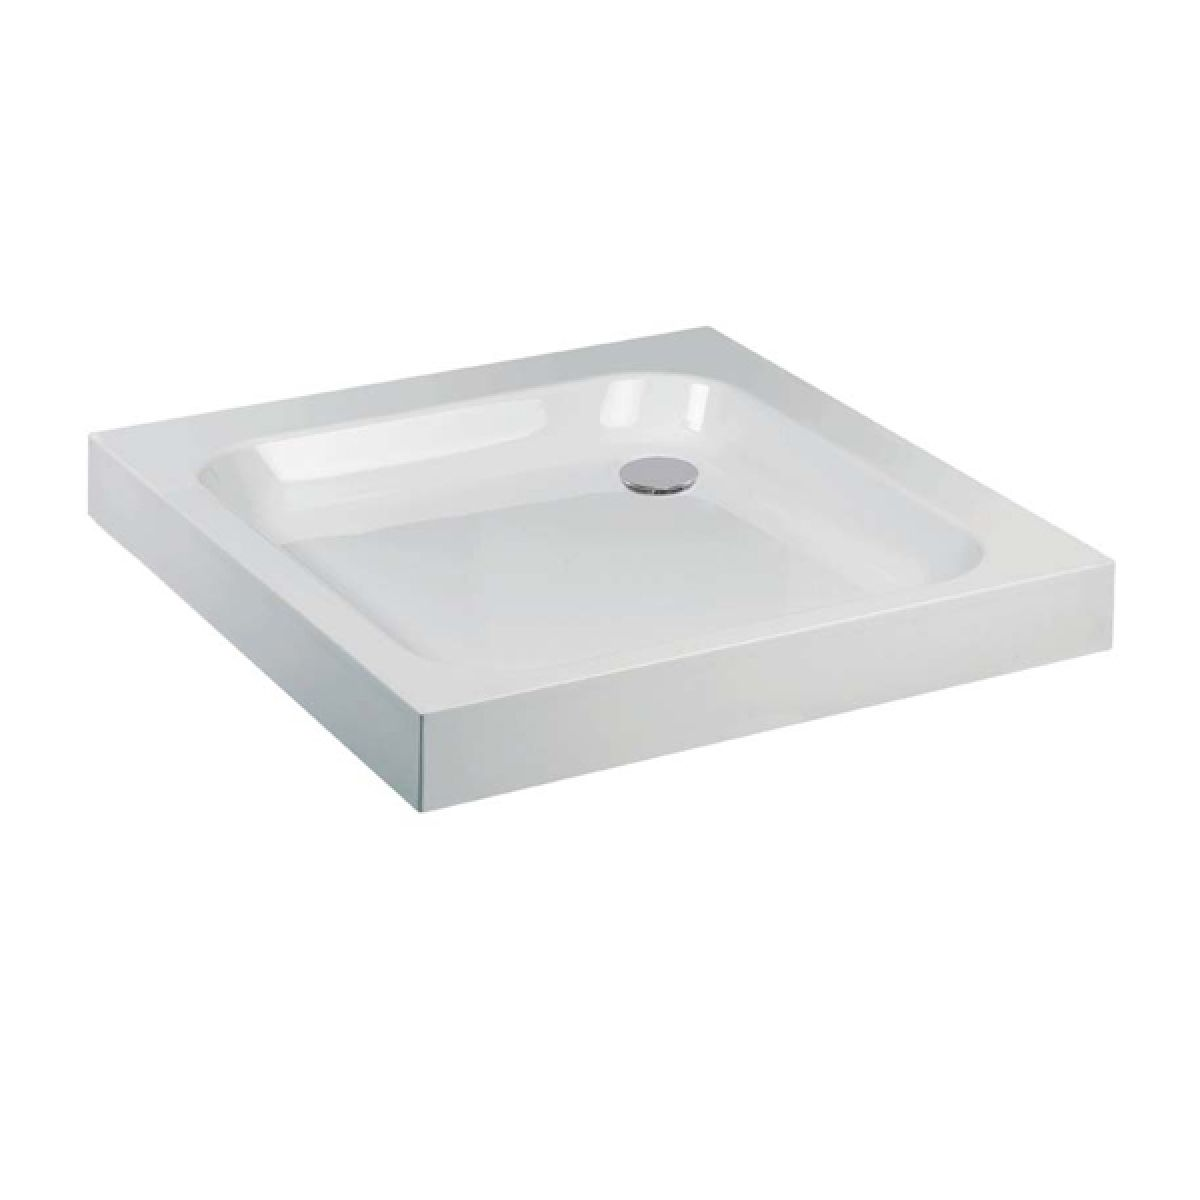 Frontline Standard Square Shower Tray 800 x 800mm